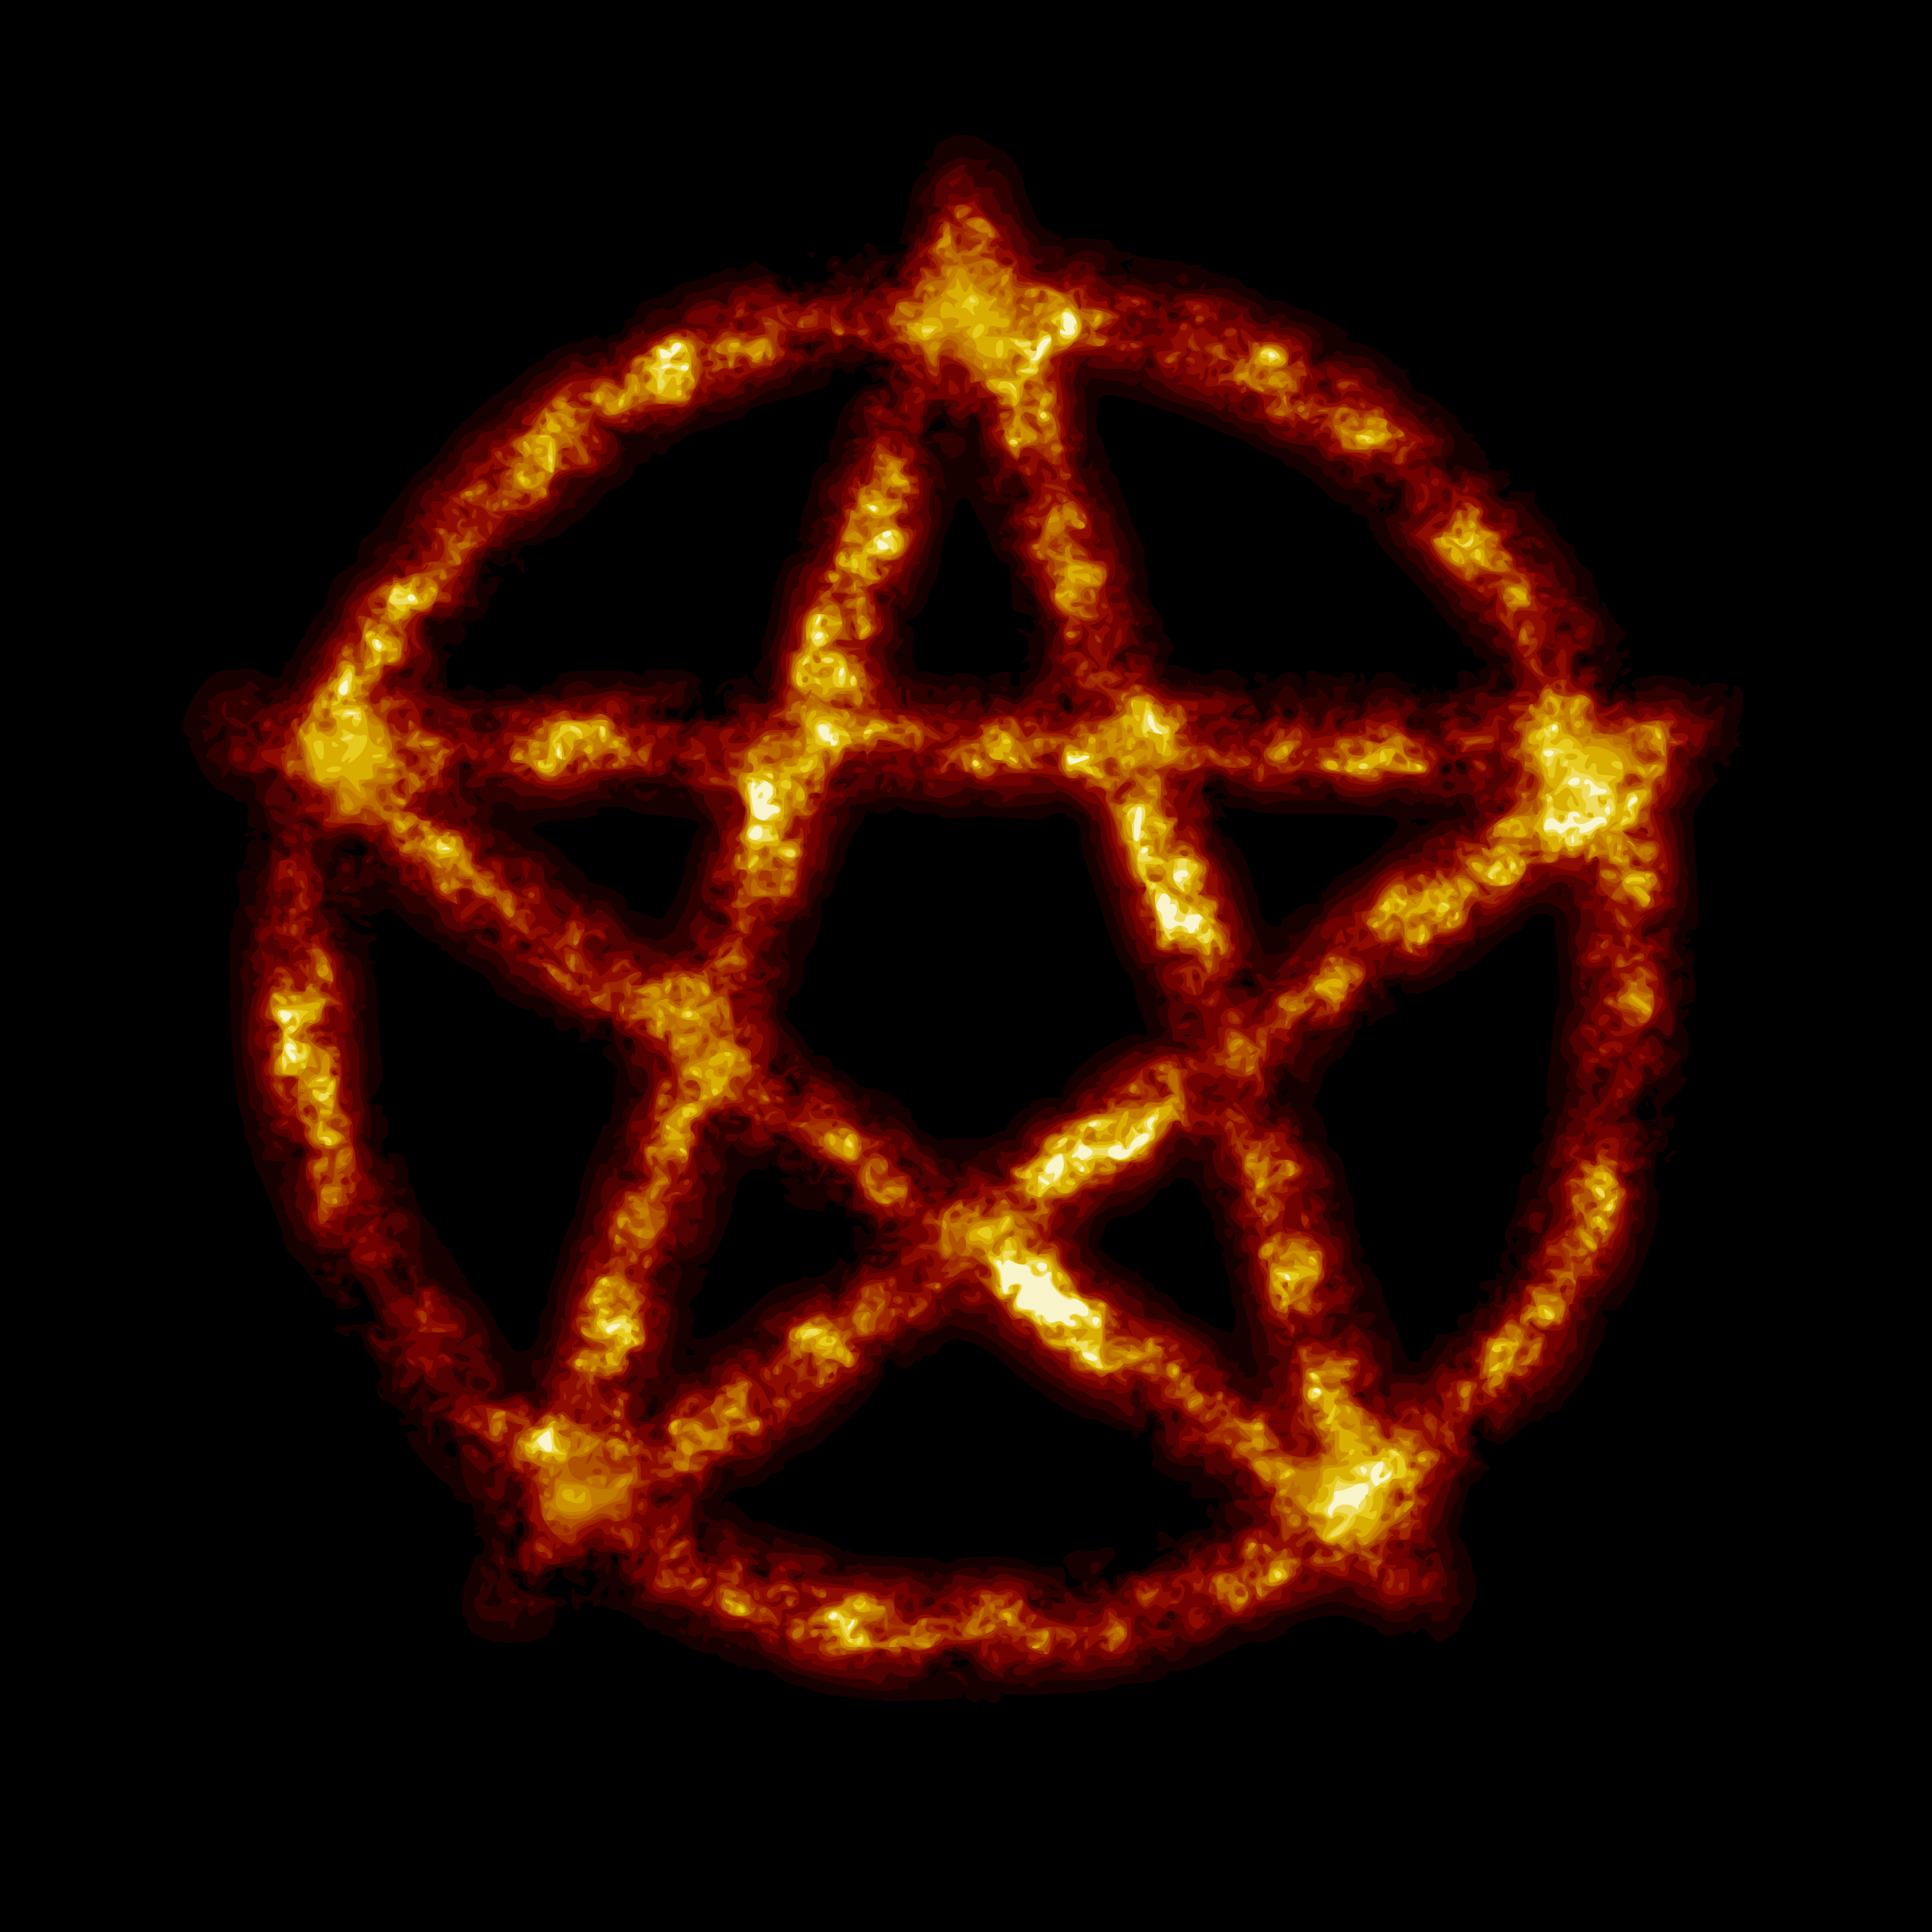 Burning pentagram (reduced file size) by Firkin